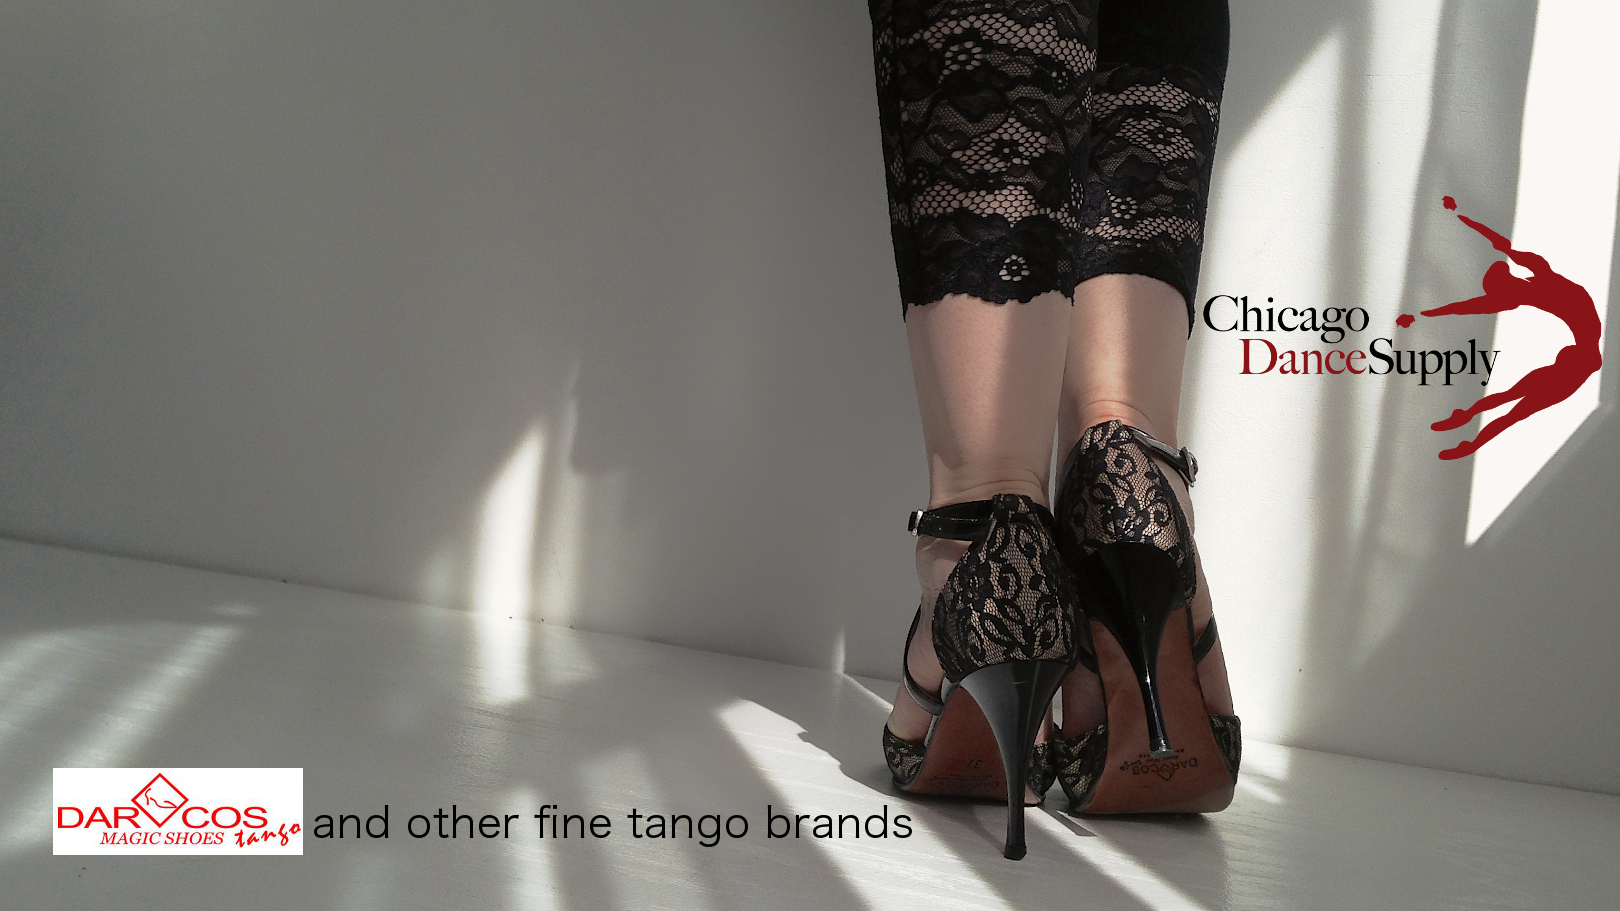 Photo:  Darcos Magic Tango Shoes.  Dancer:  Paola Bordon